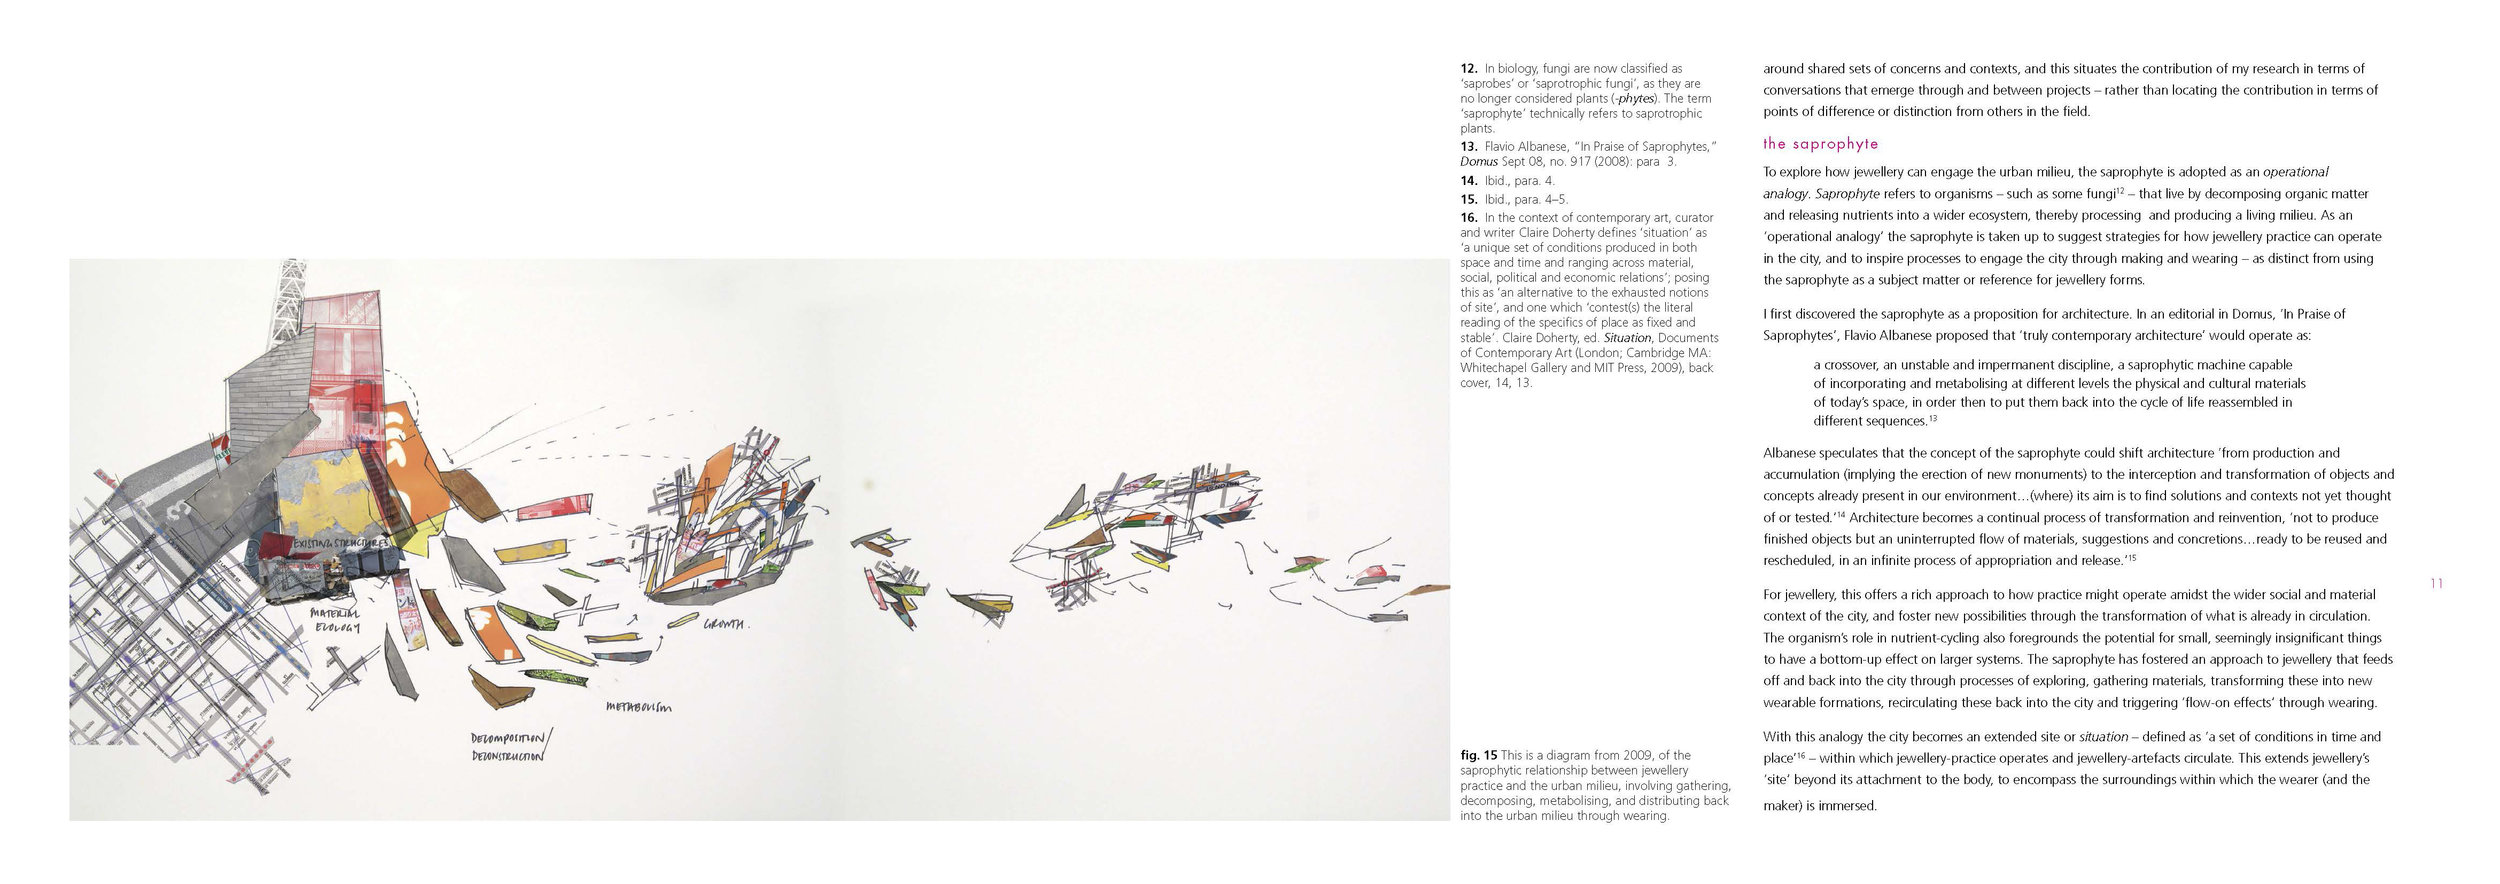 Jacqui Chan_jewellery in the urban milieu_part 1_intro + project milieu 01_Page_21.jpg